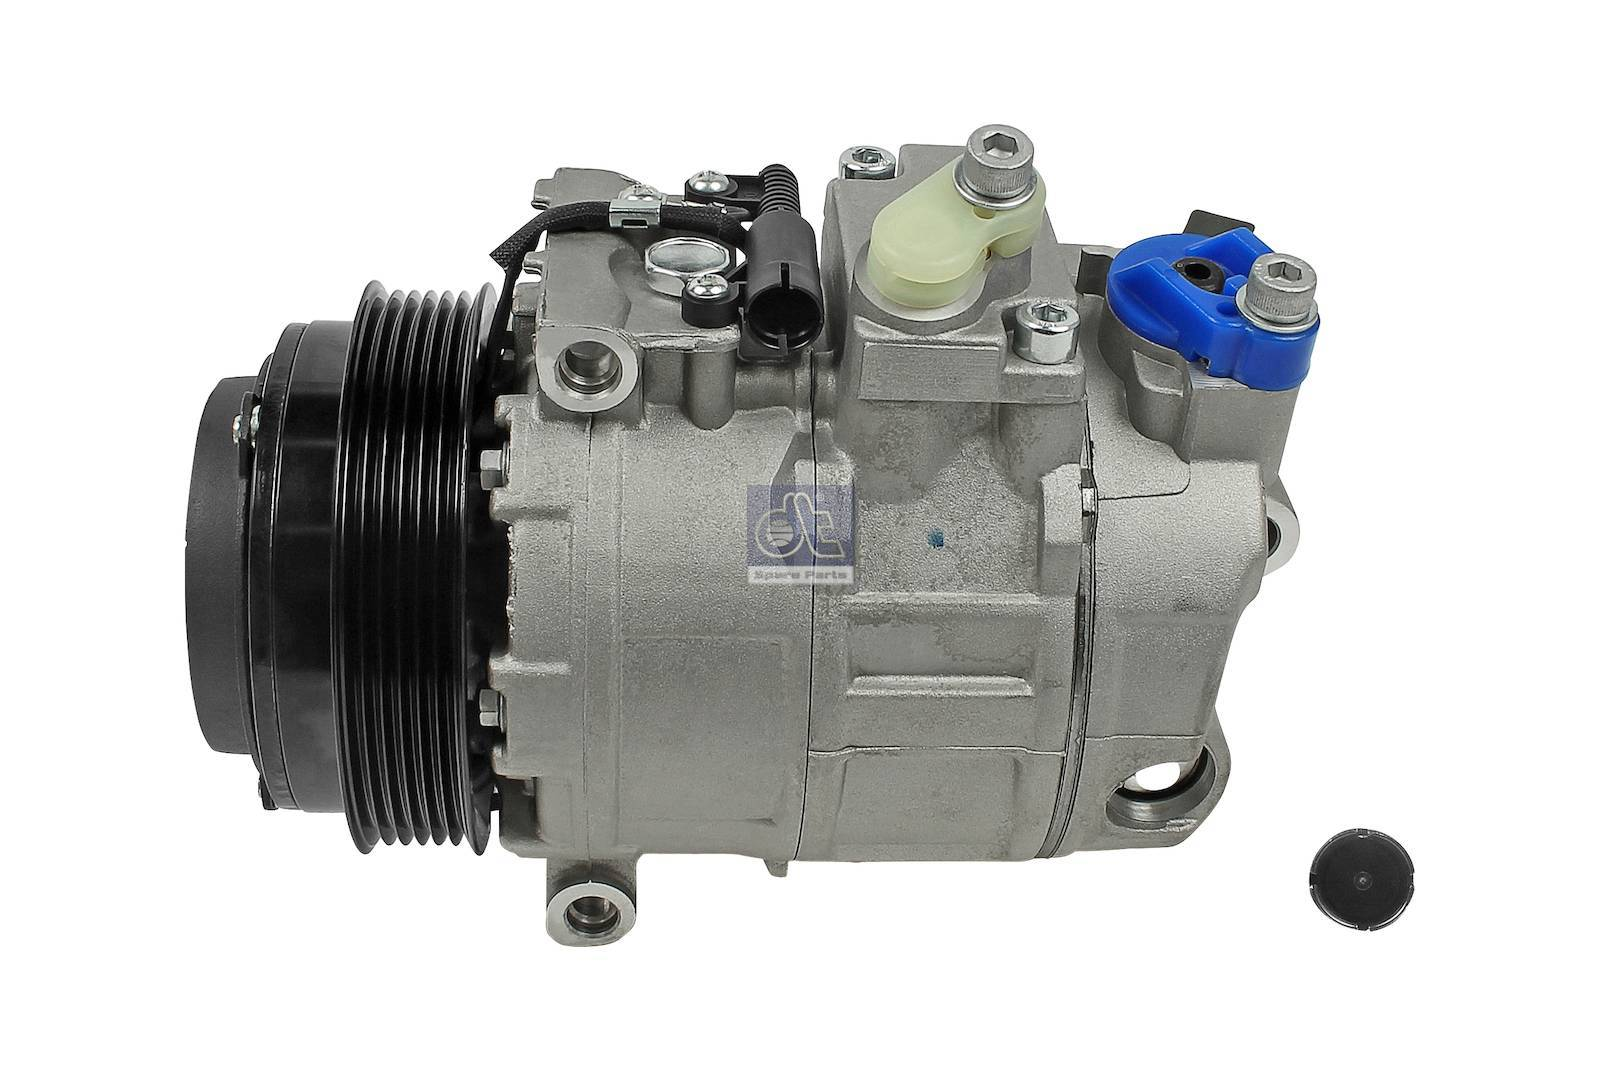 DT 4 66350 Compressor, air conditioning, oil filled 0002306811